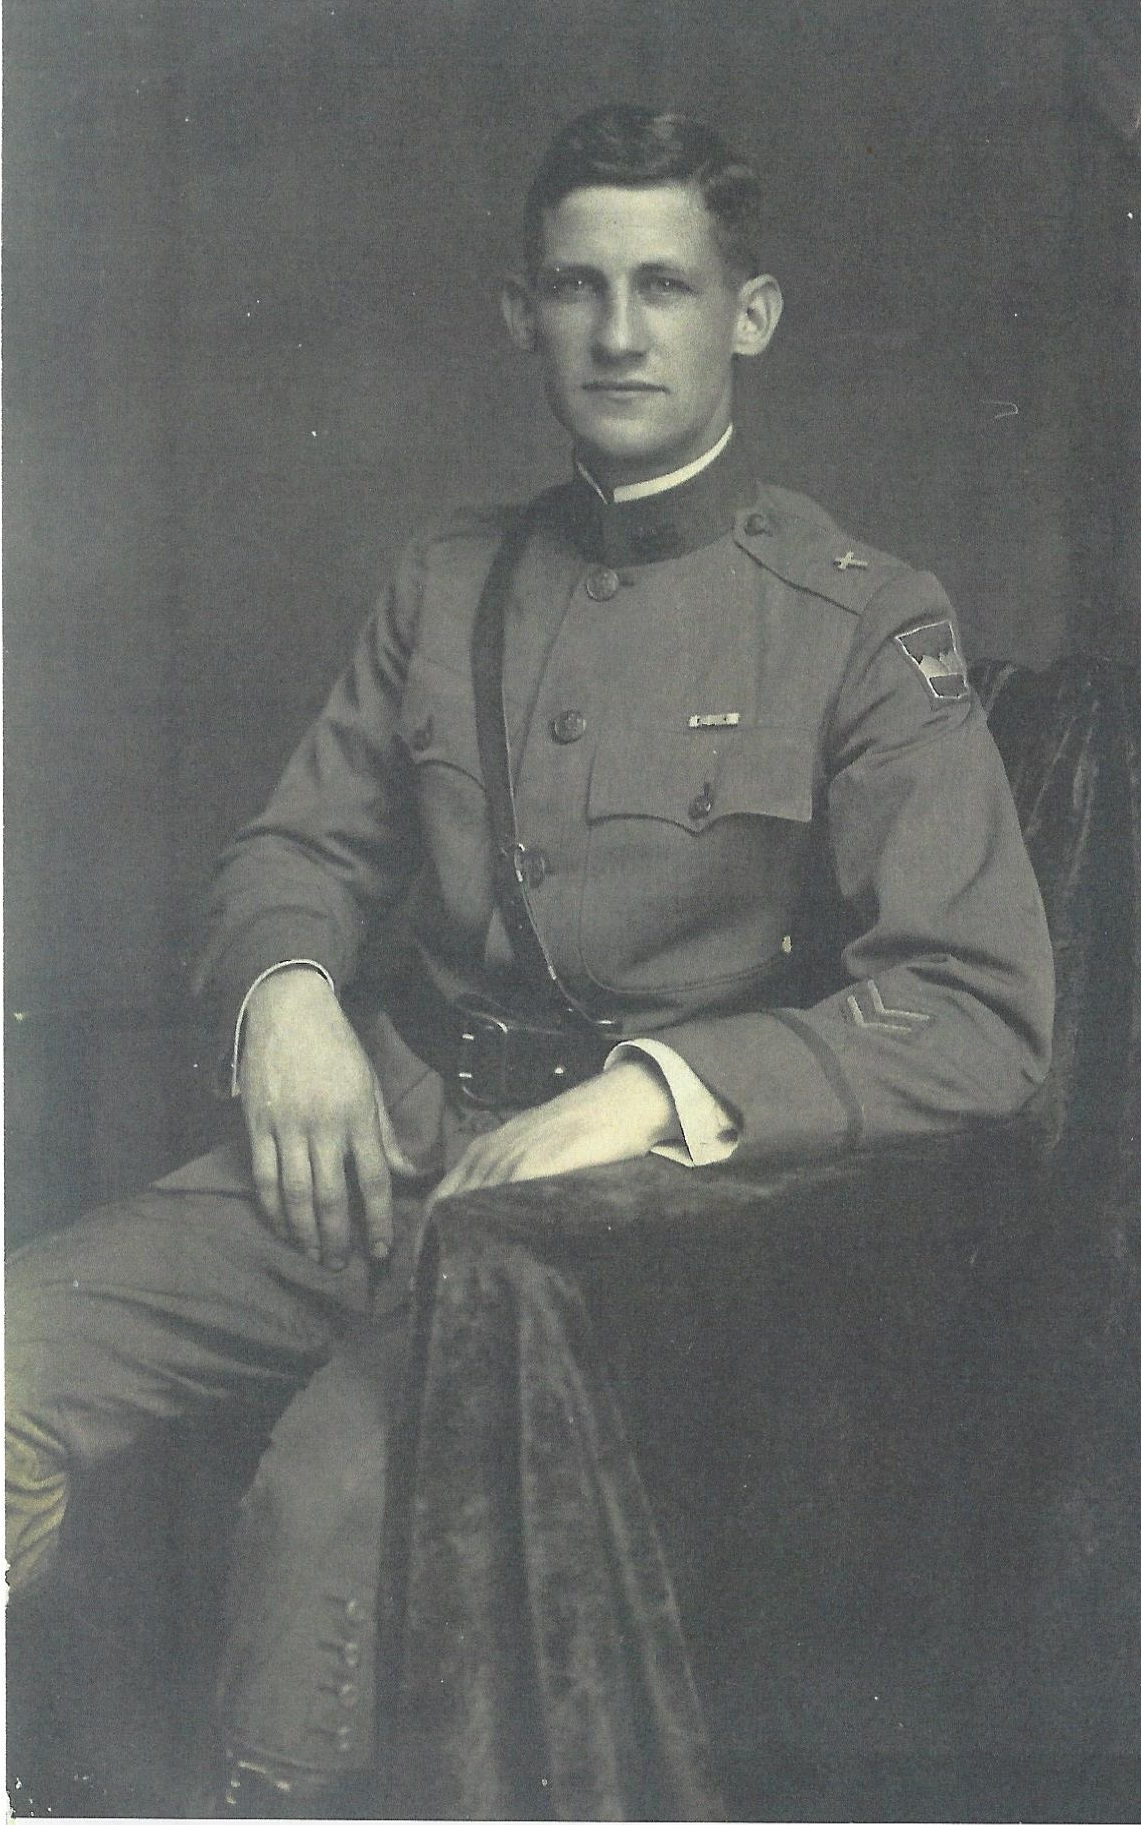 Leonia during World War I - When the United States entered World War I some 160 men served in France including the Reverend Arthur Brown from the Methodist Church as a chaplain and four doctors among them Dr. James Wyckoff.Lieutenant Arthur Brown, Chaplain circa 1918